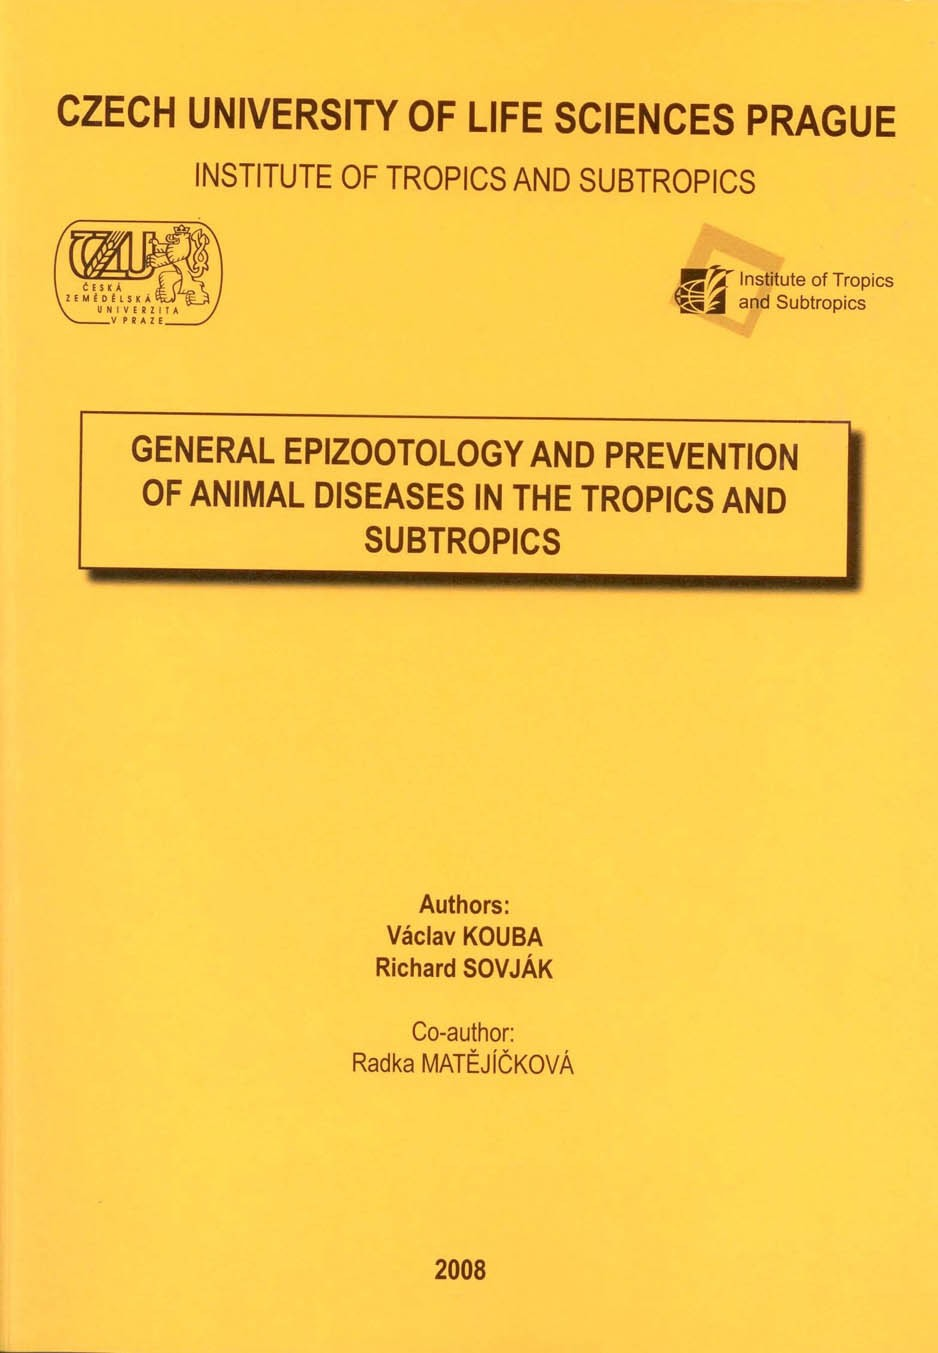 General Epizootology and Prevention of Animal Diseases in the Tropics and Subtropics